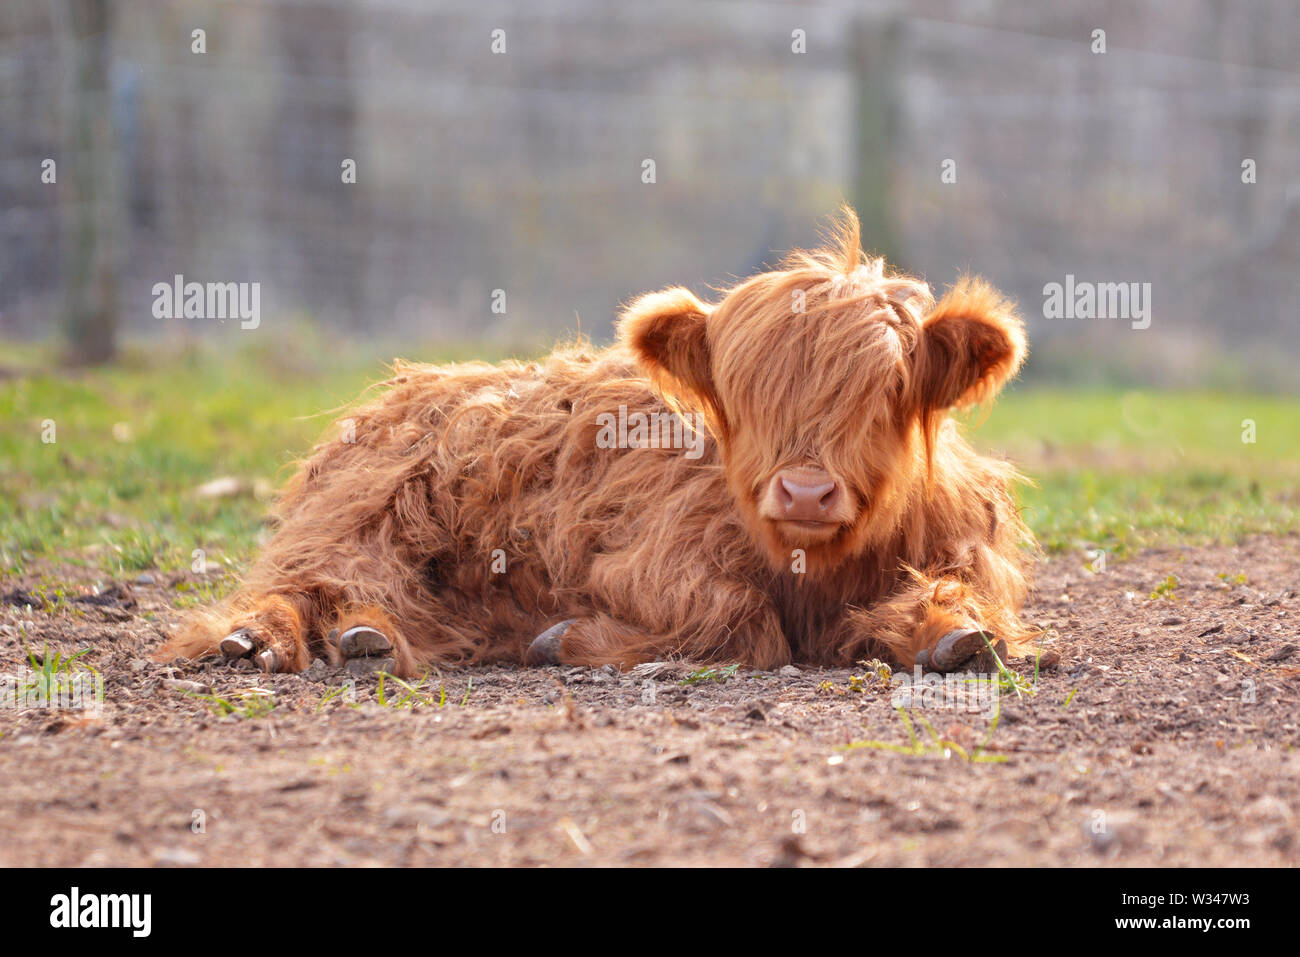 Cute Young Scottish Highland Cattle Calf With Light Brown